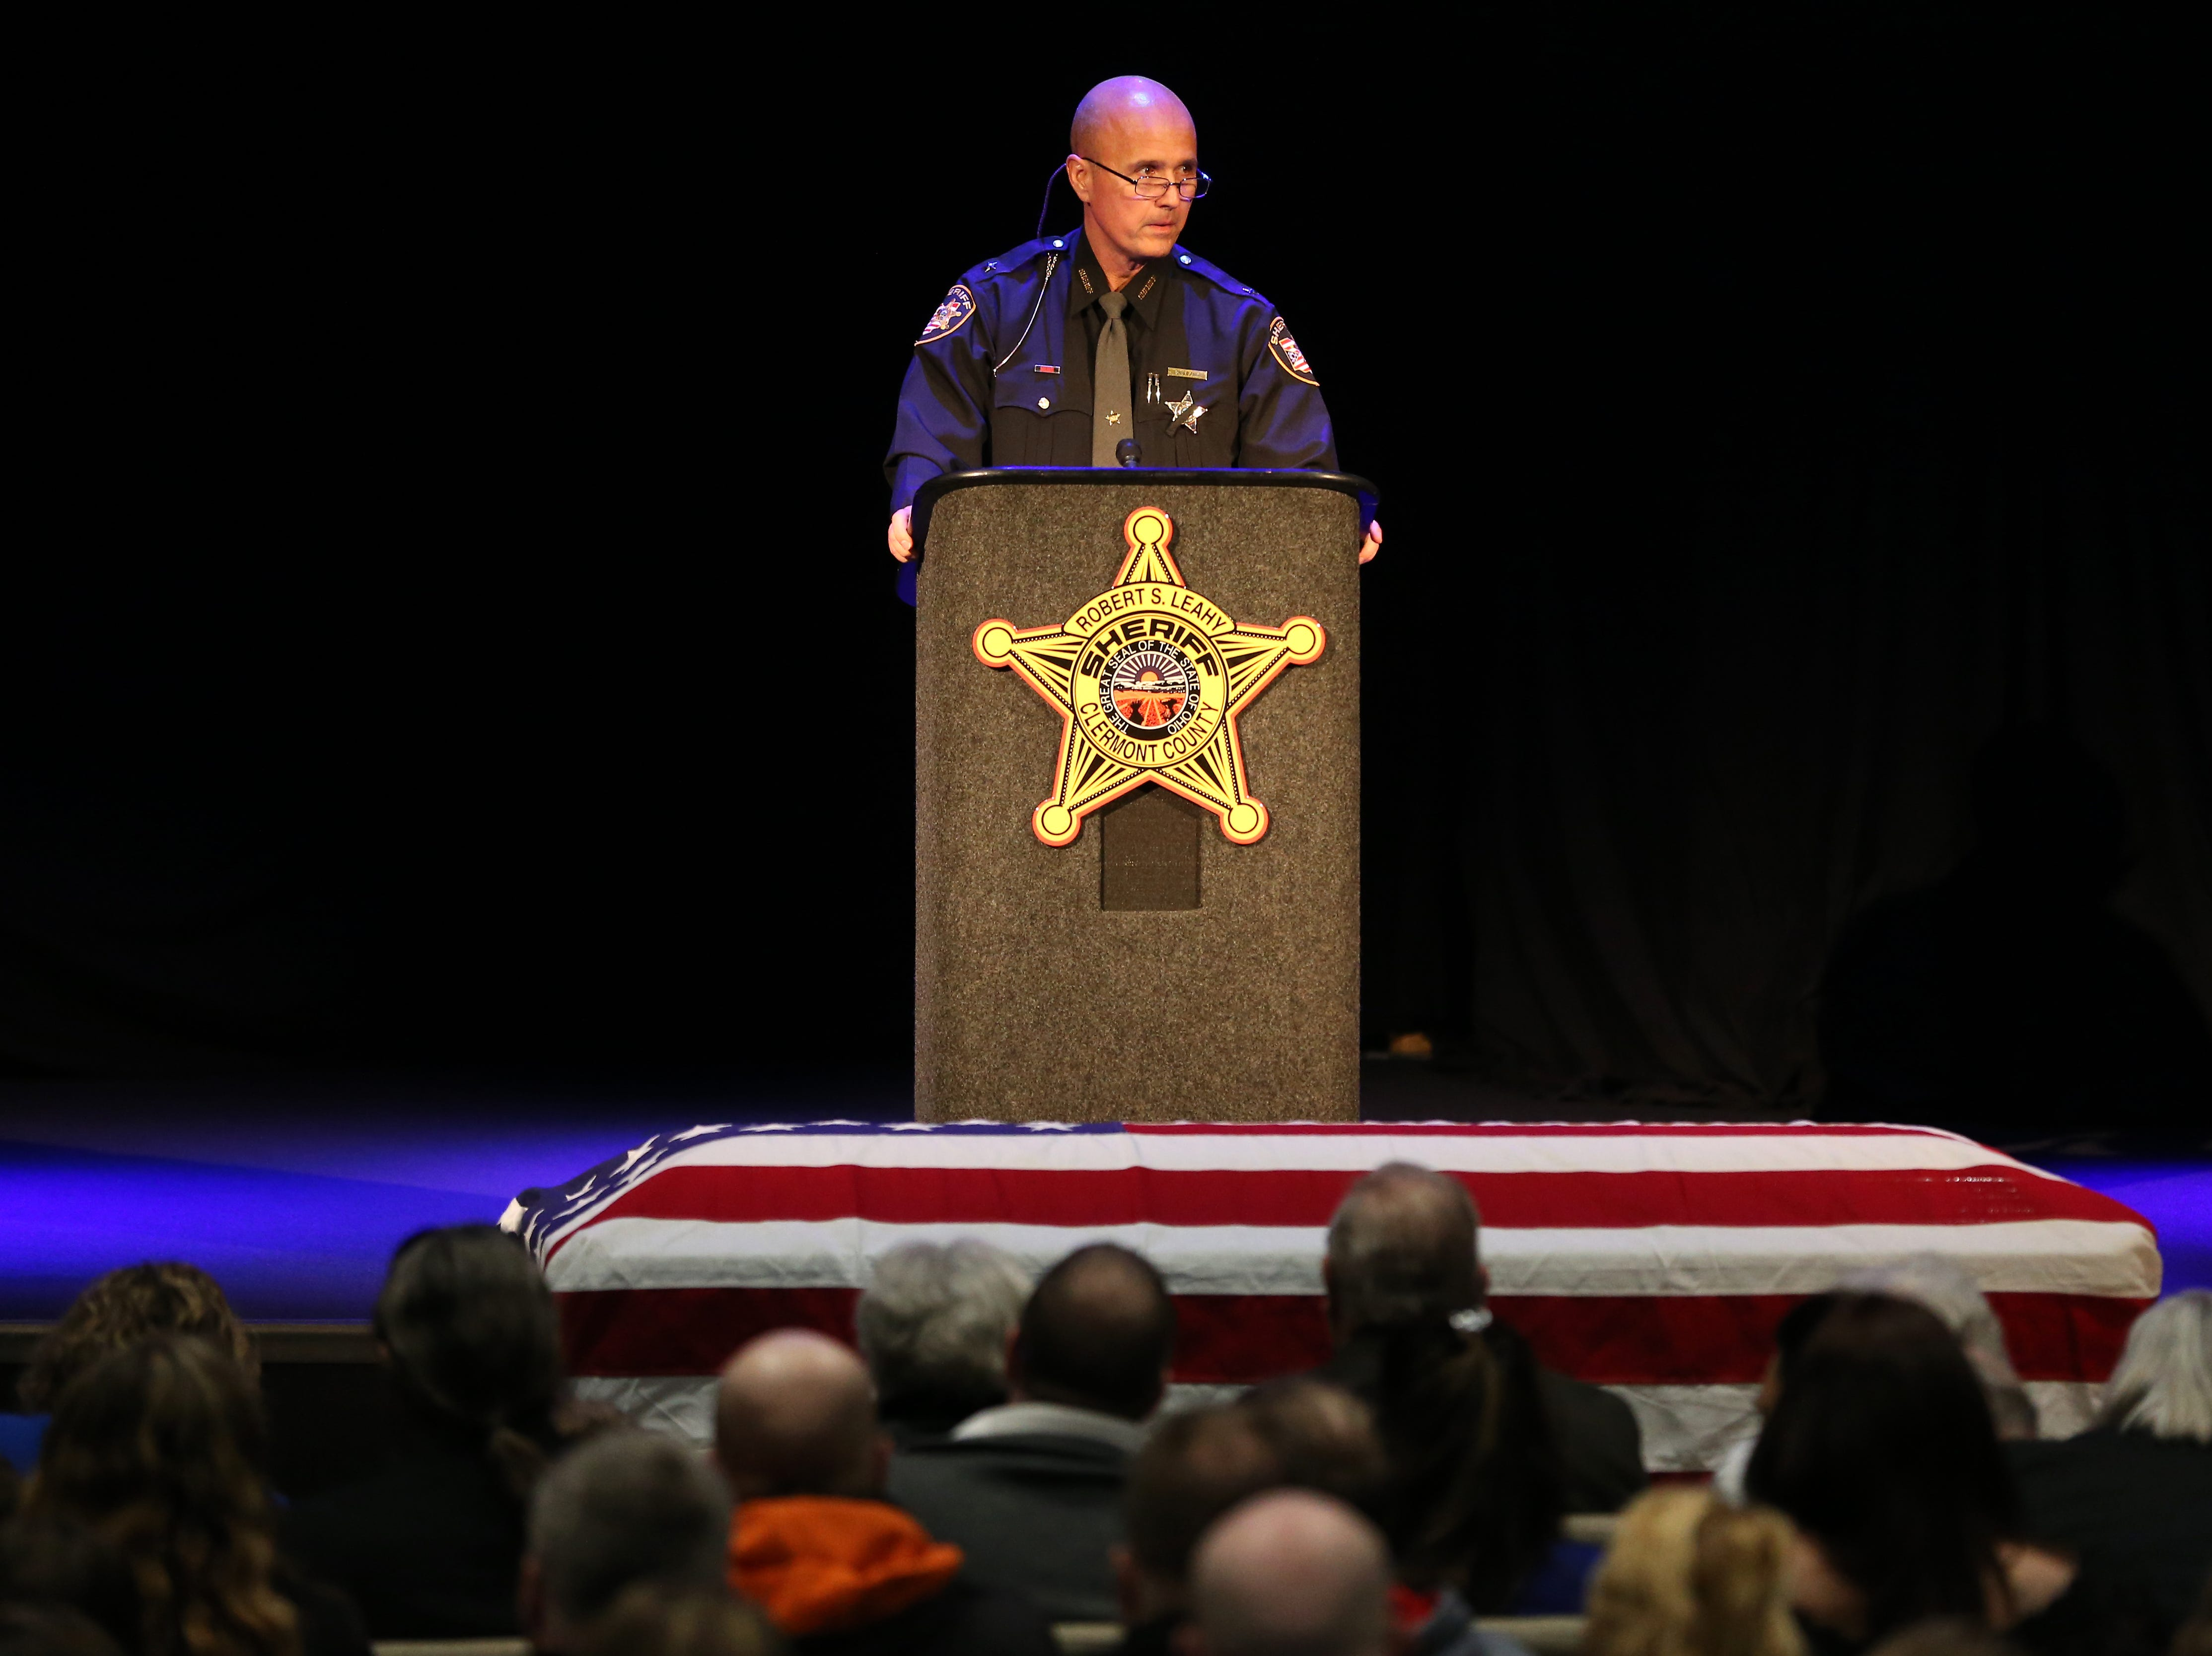 Clermont County Sheriff Robert Leahy delivers remarks during funeral services for Clermont County Sheriff's Detective William Lee Brewer Jr., Friday, Feb. 8, 2019, at Mount Carmel Christian Church in Union Township, Ohio. Brewer, a 20-year veteran of the Clermont County SheriffÕs Office, died in the line of duty. He was shot Feb. 2 during a standoff. Brewer, 42, of Pierce Township, is survived by his wife, Jamie, and a 5-year-old son, Braxton. (Kareem Elgazzar/The Cincinnati Enquirer)